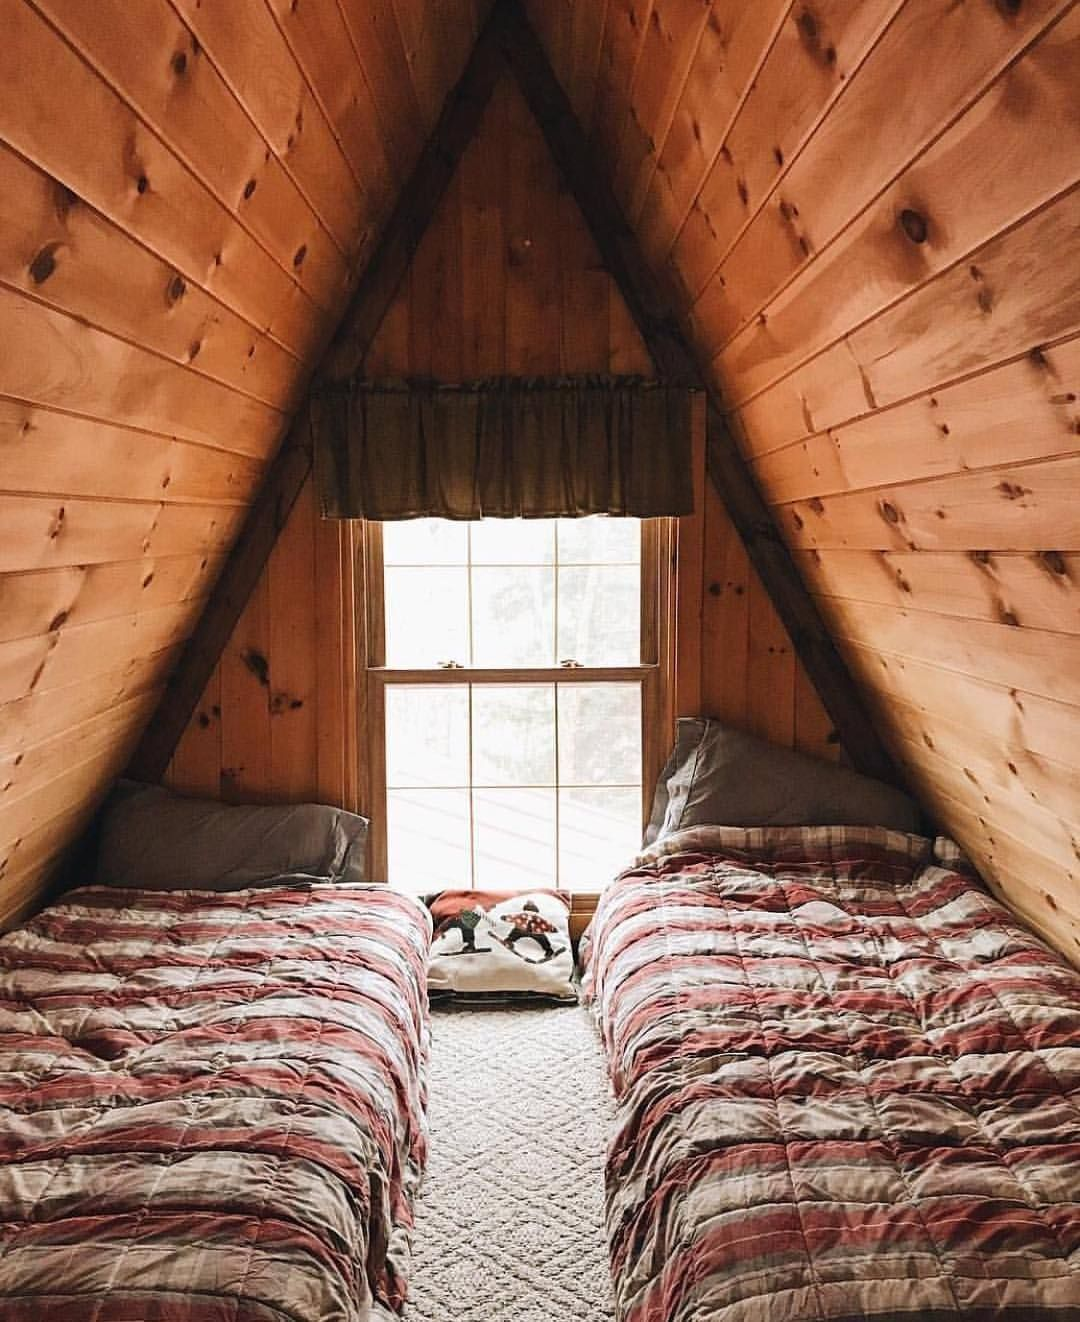 There S Just Something About An A Frame Attic A Bed That Gives Me The Cozy Sleepy Feels Goodnight To All Who Need A Frame House Wooden Cabins Cabin Decor